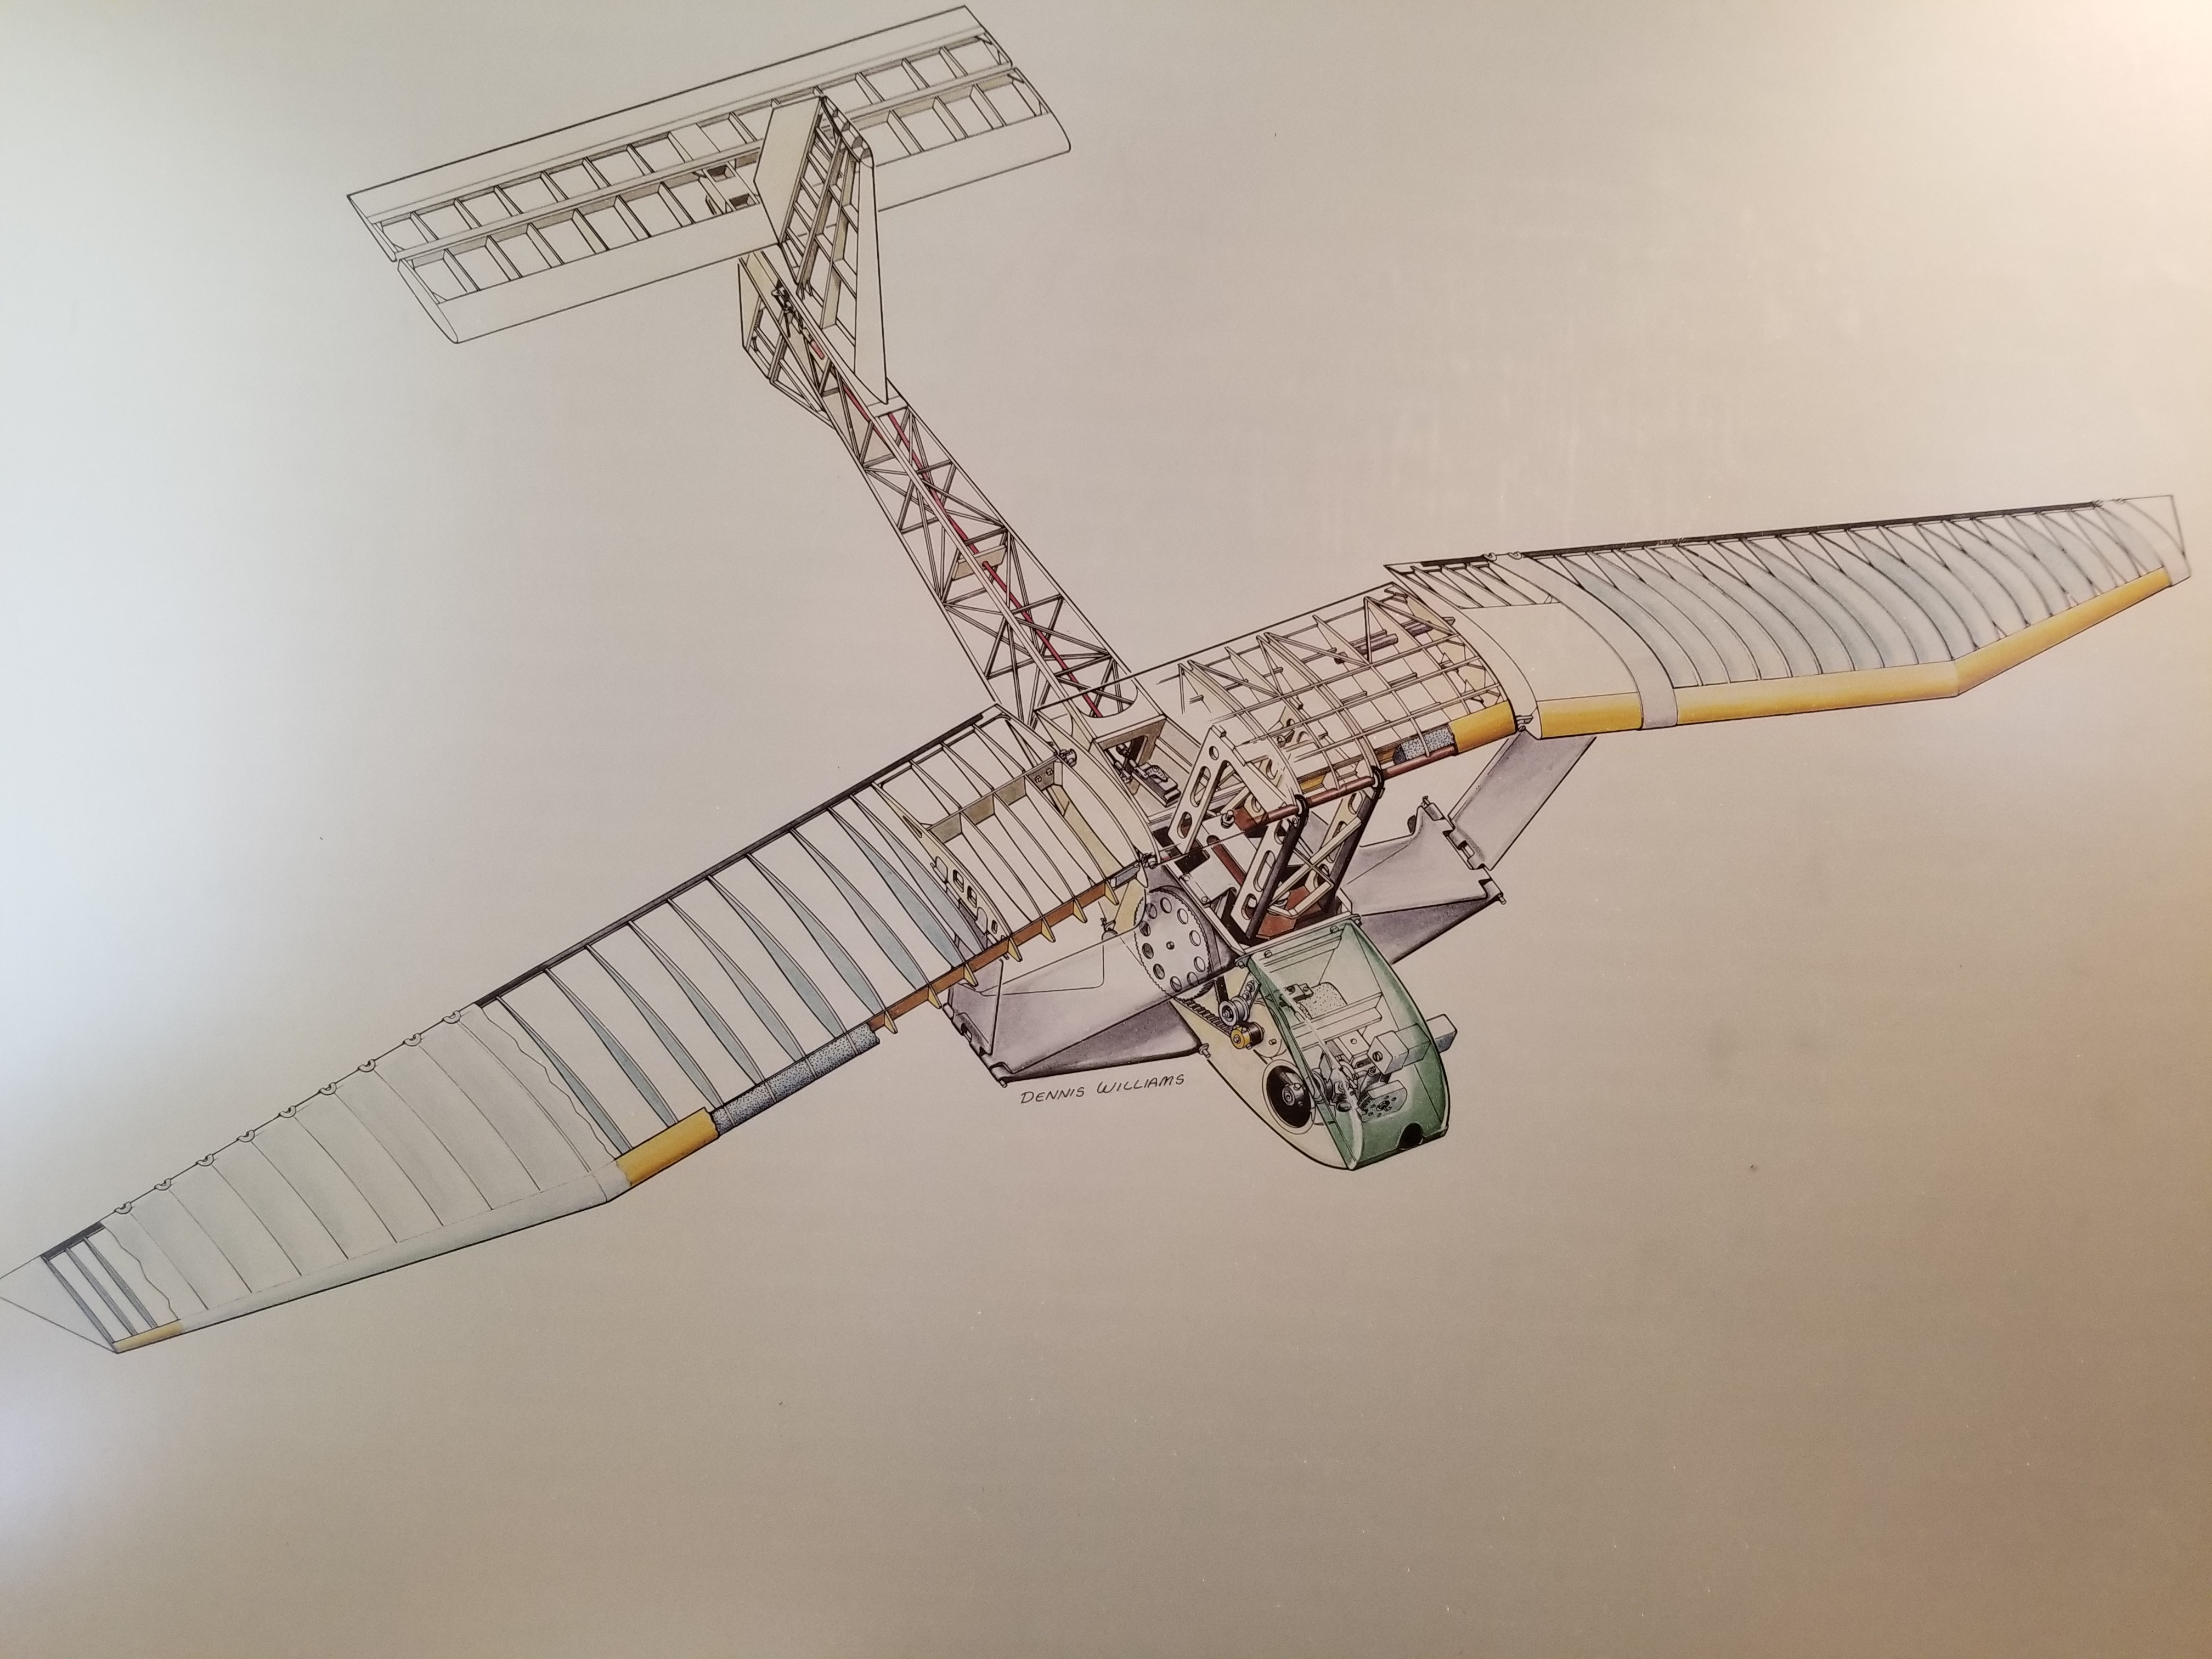 Ornithopter First Flight